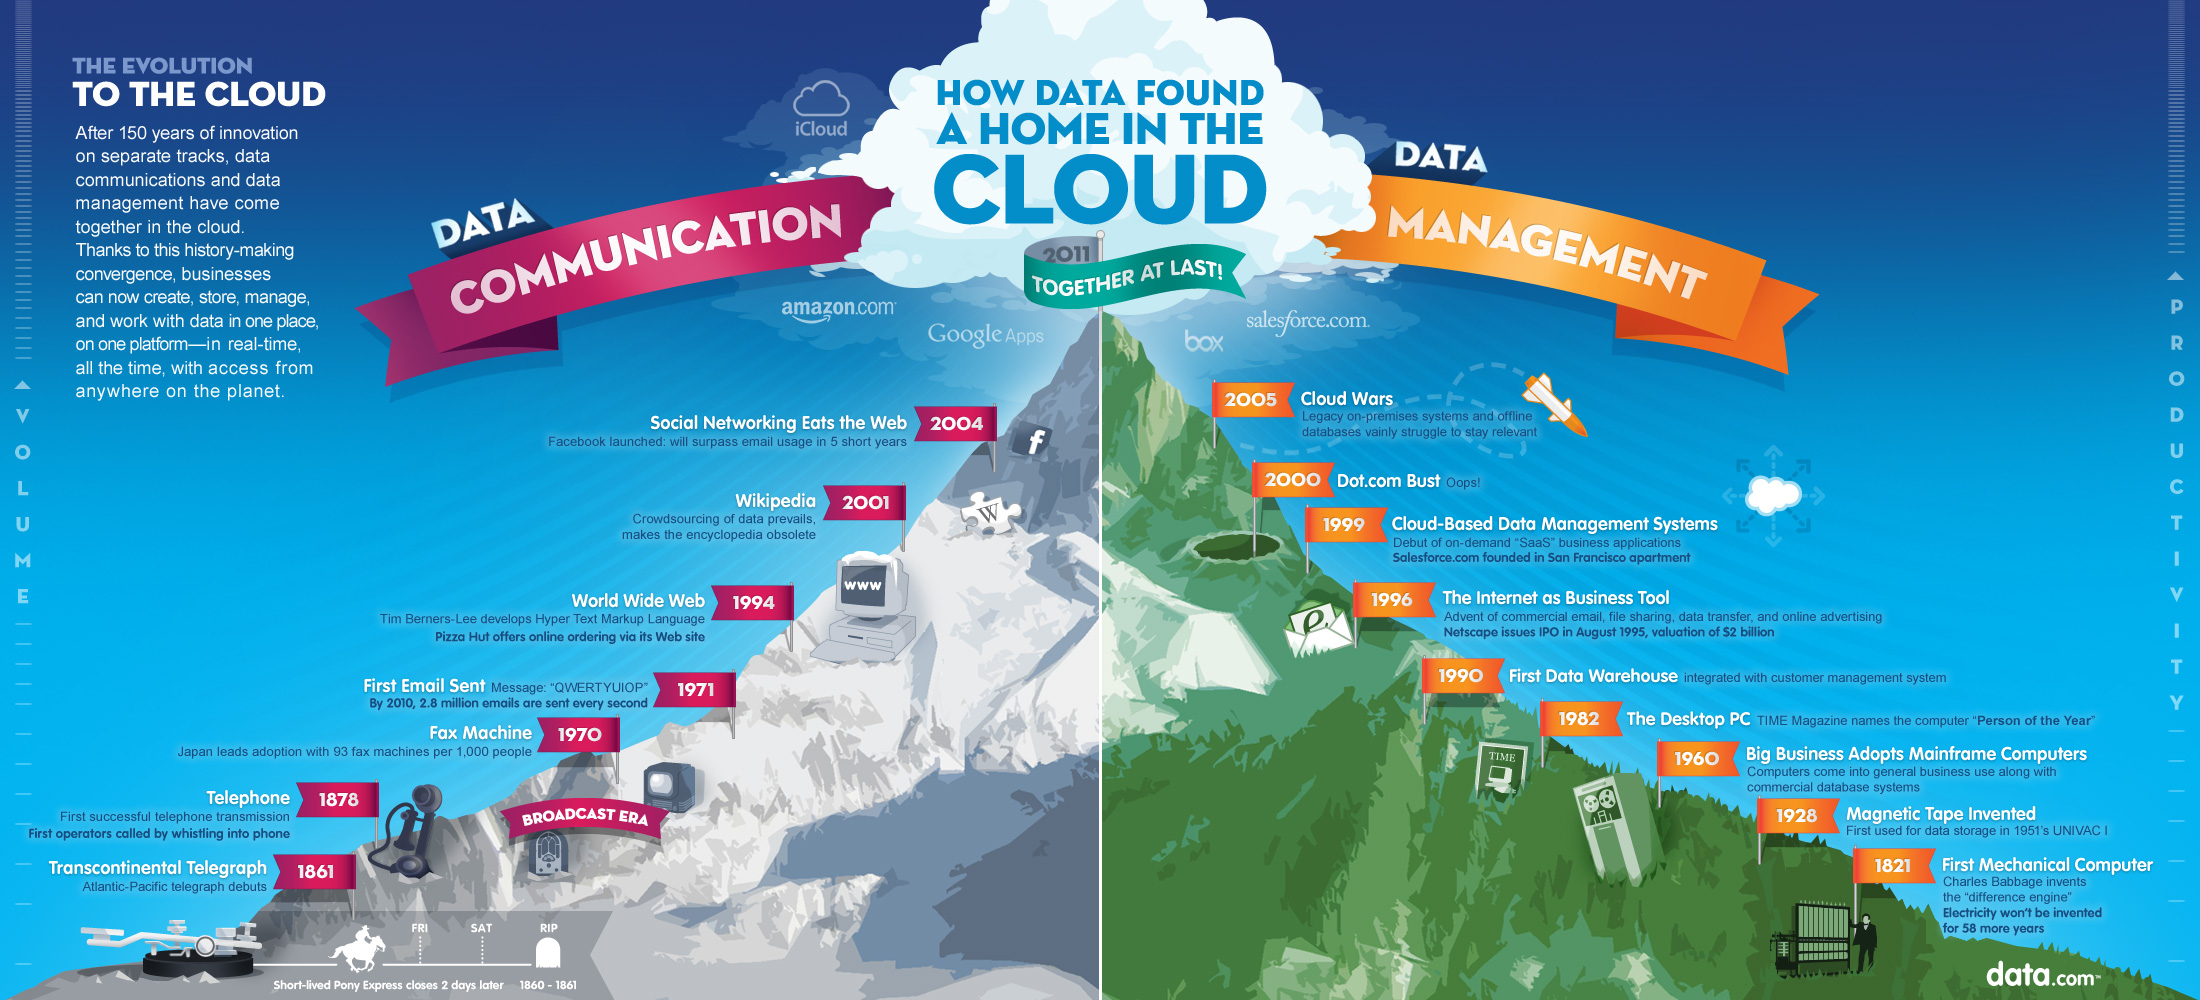 How Data Found the Cloud